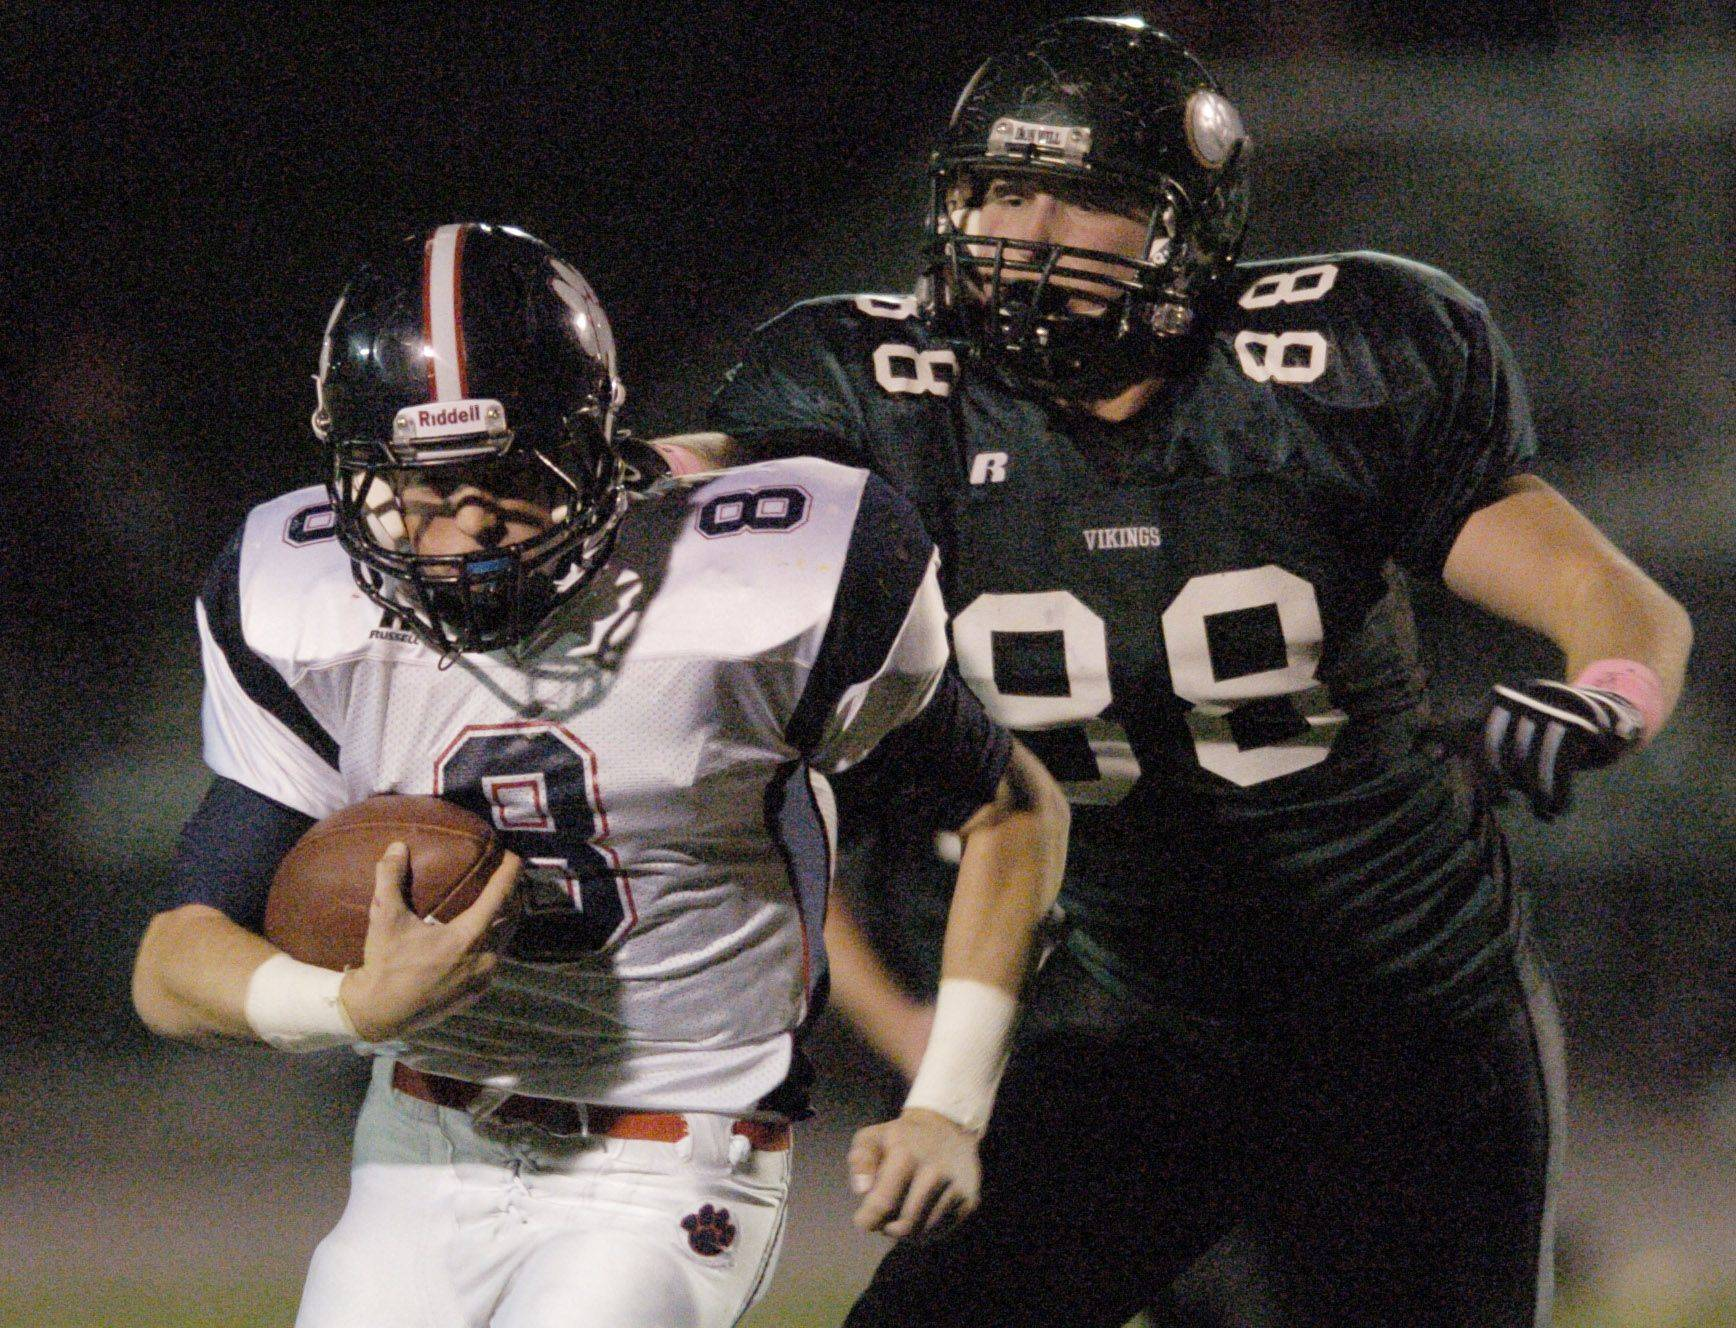 WEEK 9- Conant quarterback Matt Cullen is pursued by Fremd's Jack Konopka.